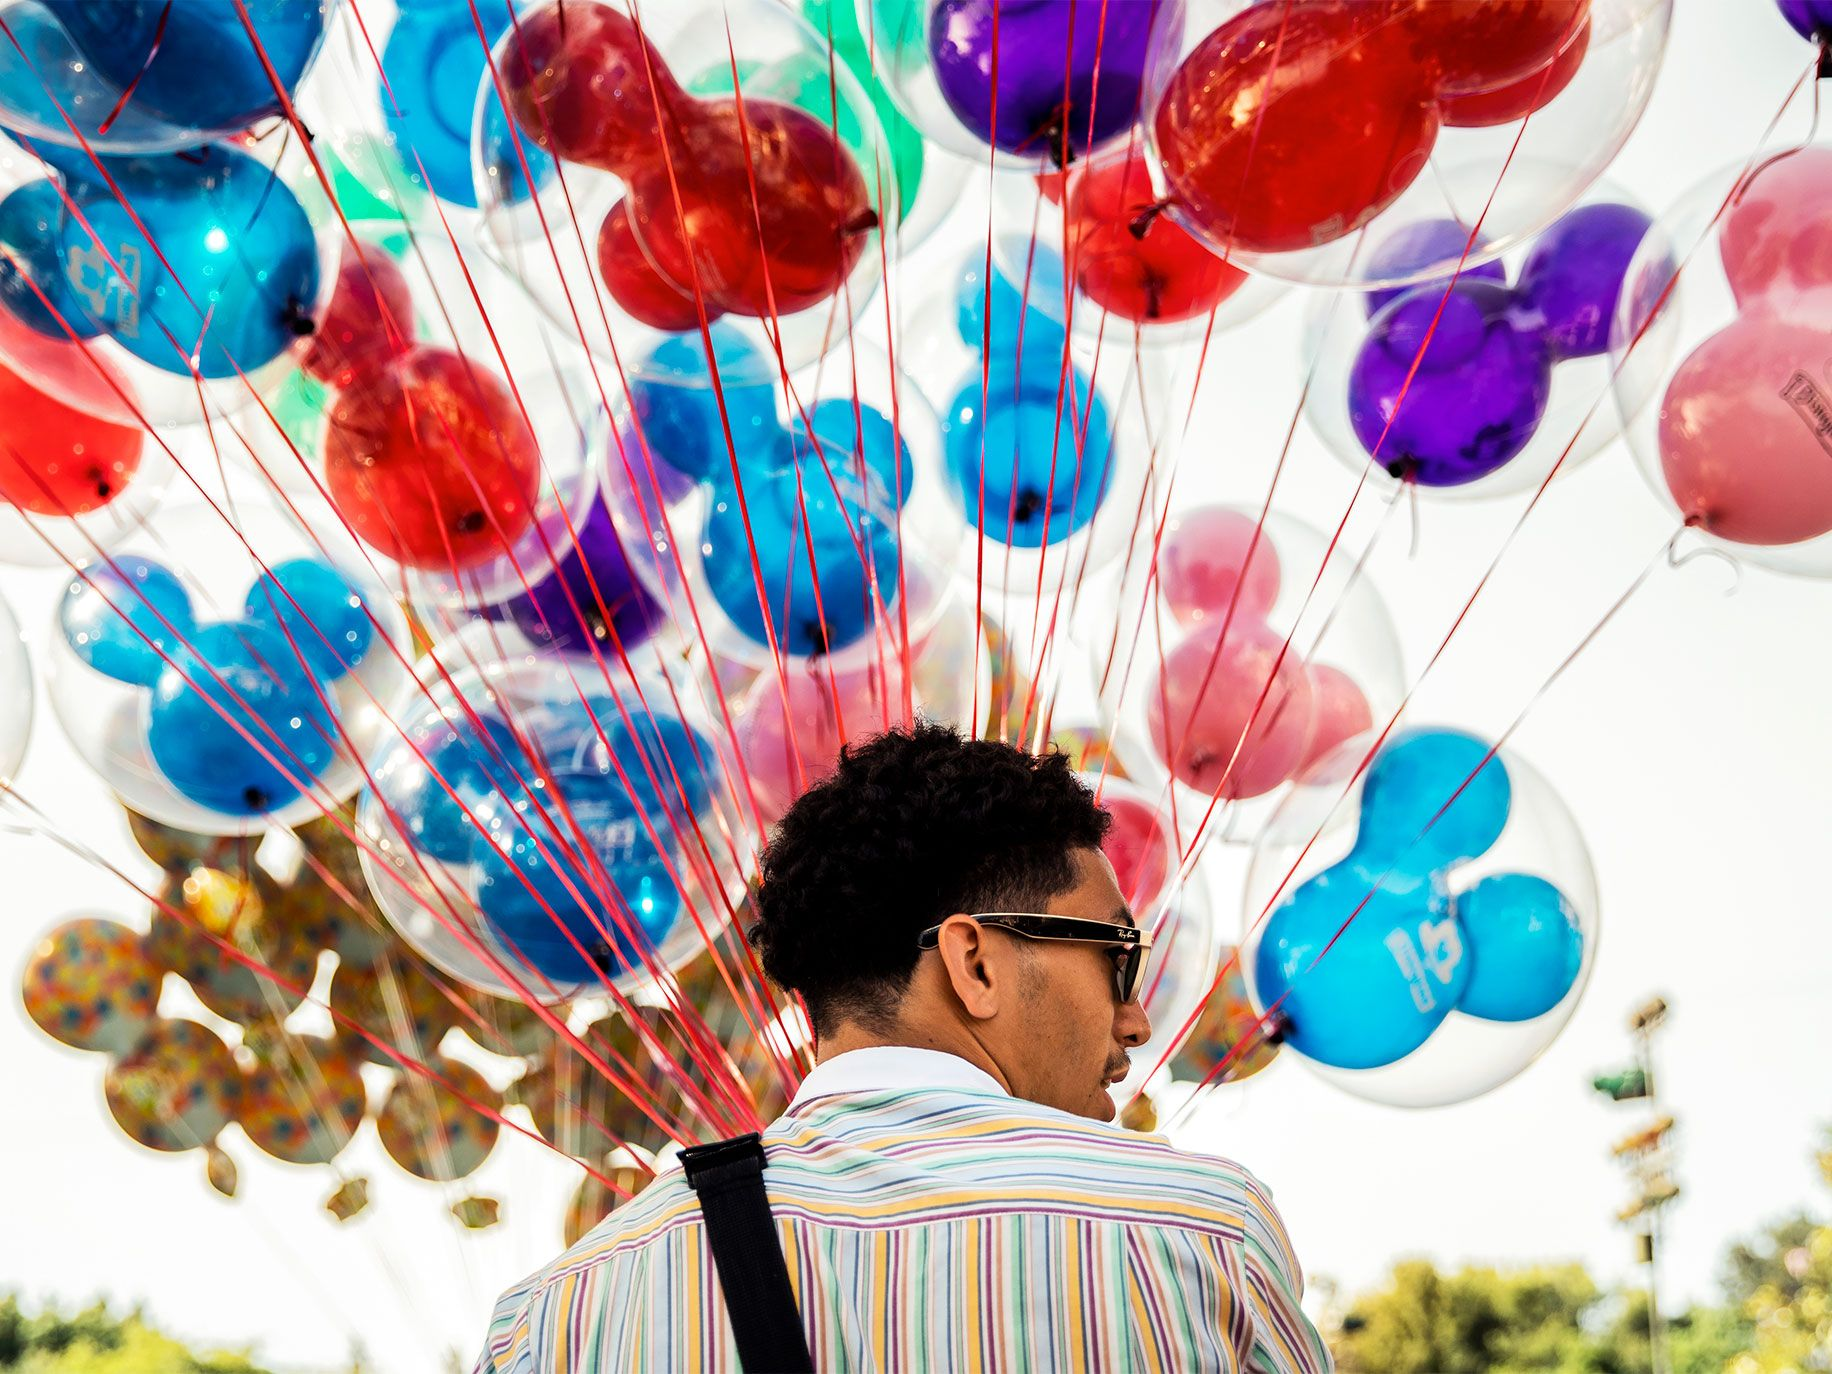 A balloon seller at Disneyland. Anaheim voters will decide in November whether to pass a living-wage ordinance for businesses, like Disney, that take subsidies from the city.